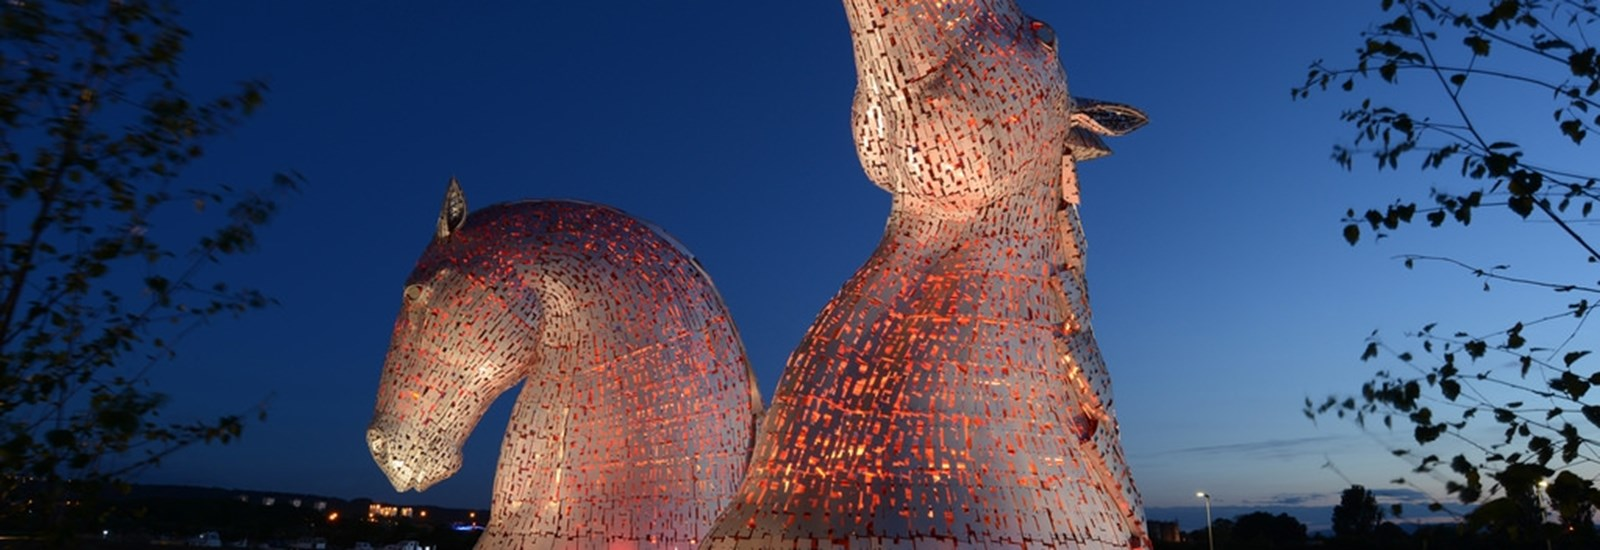 The Kelpies, Helix Park, Falkirk, Scotland